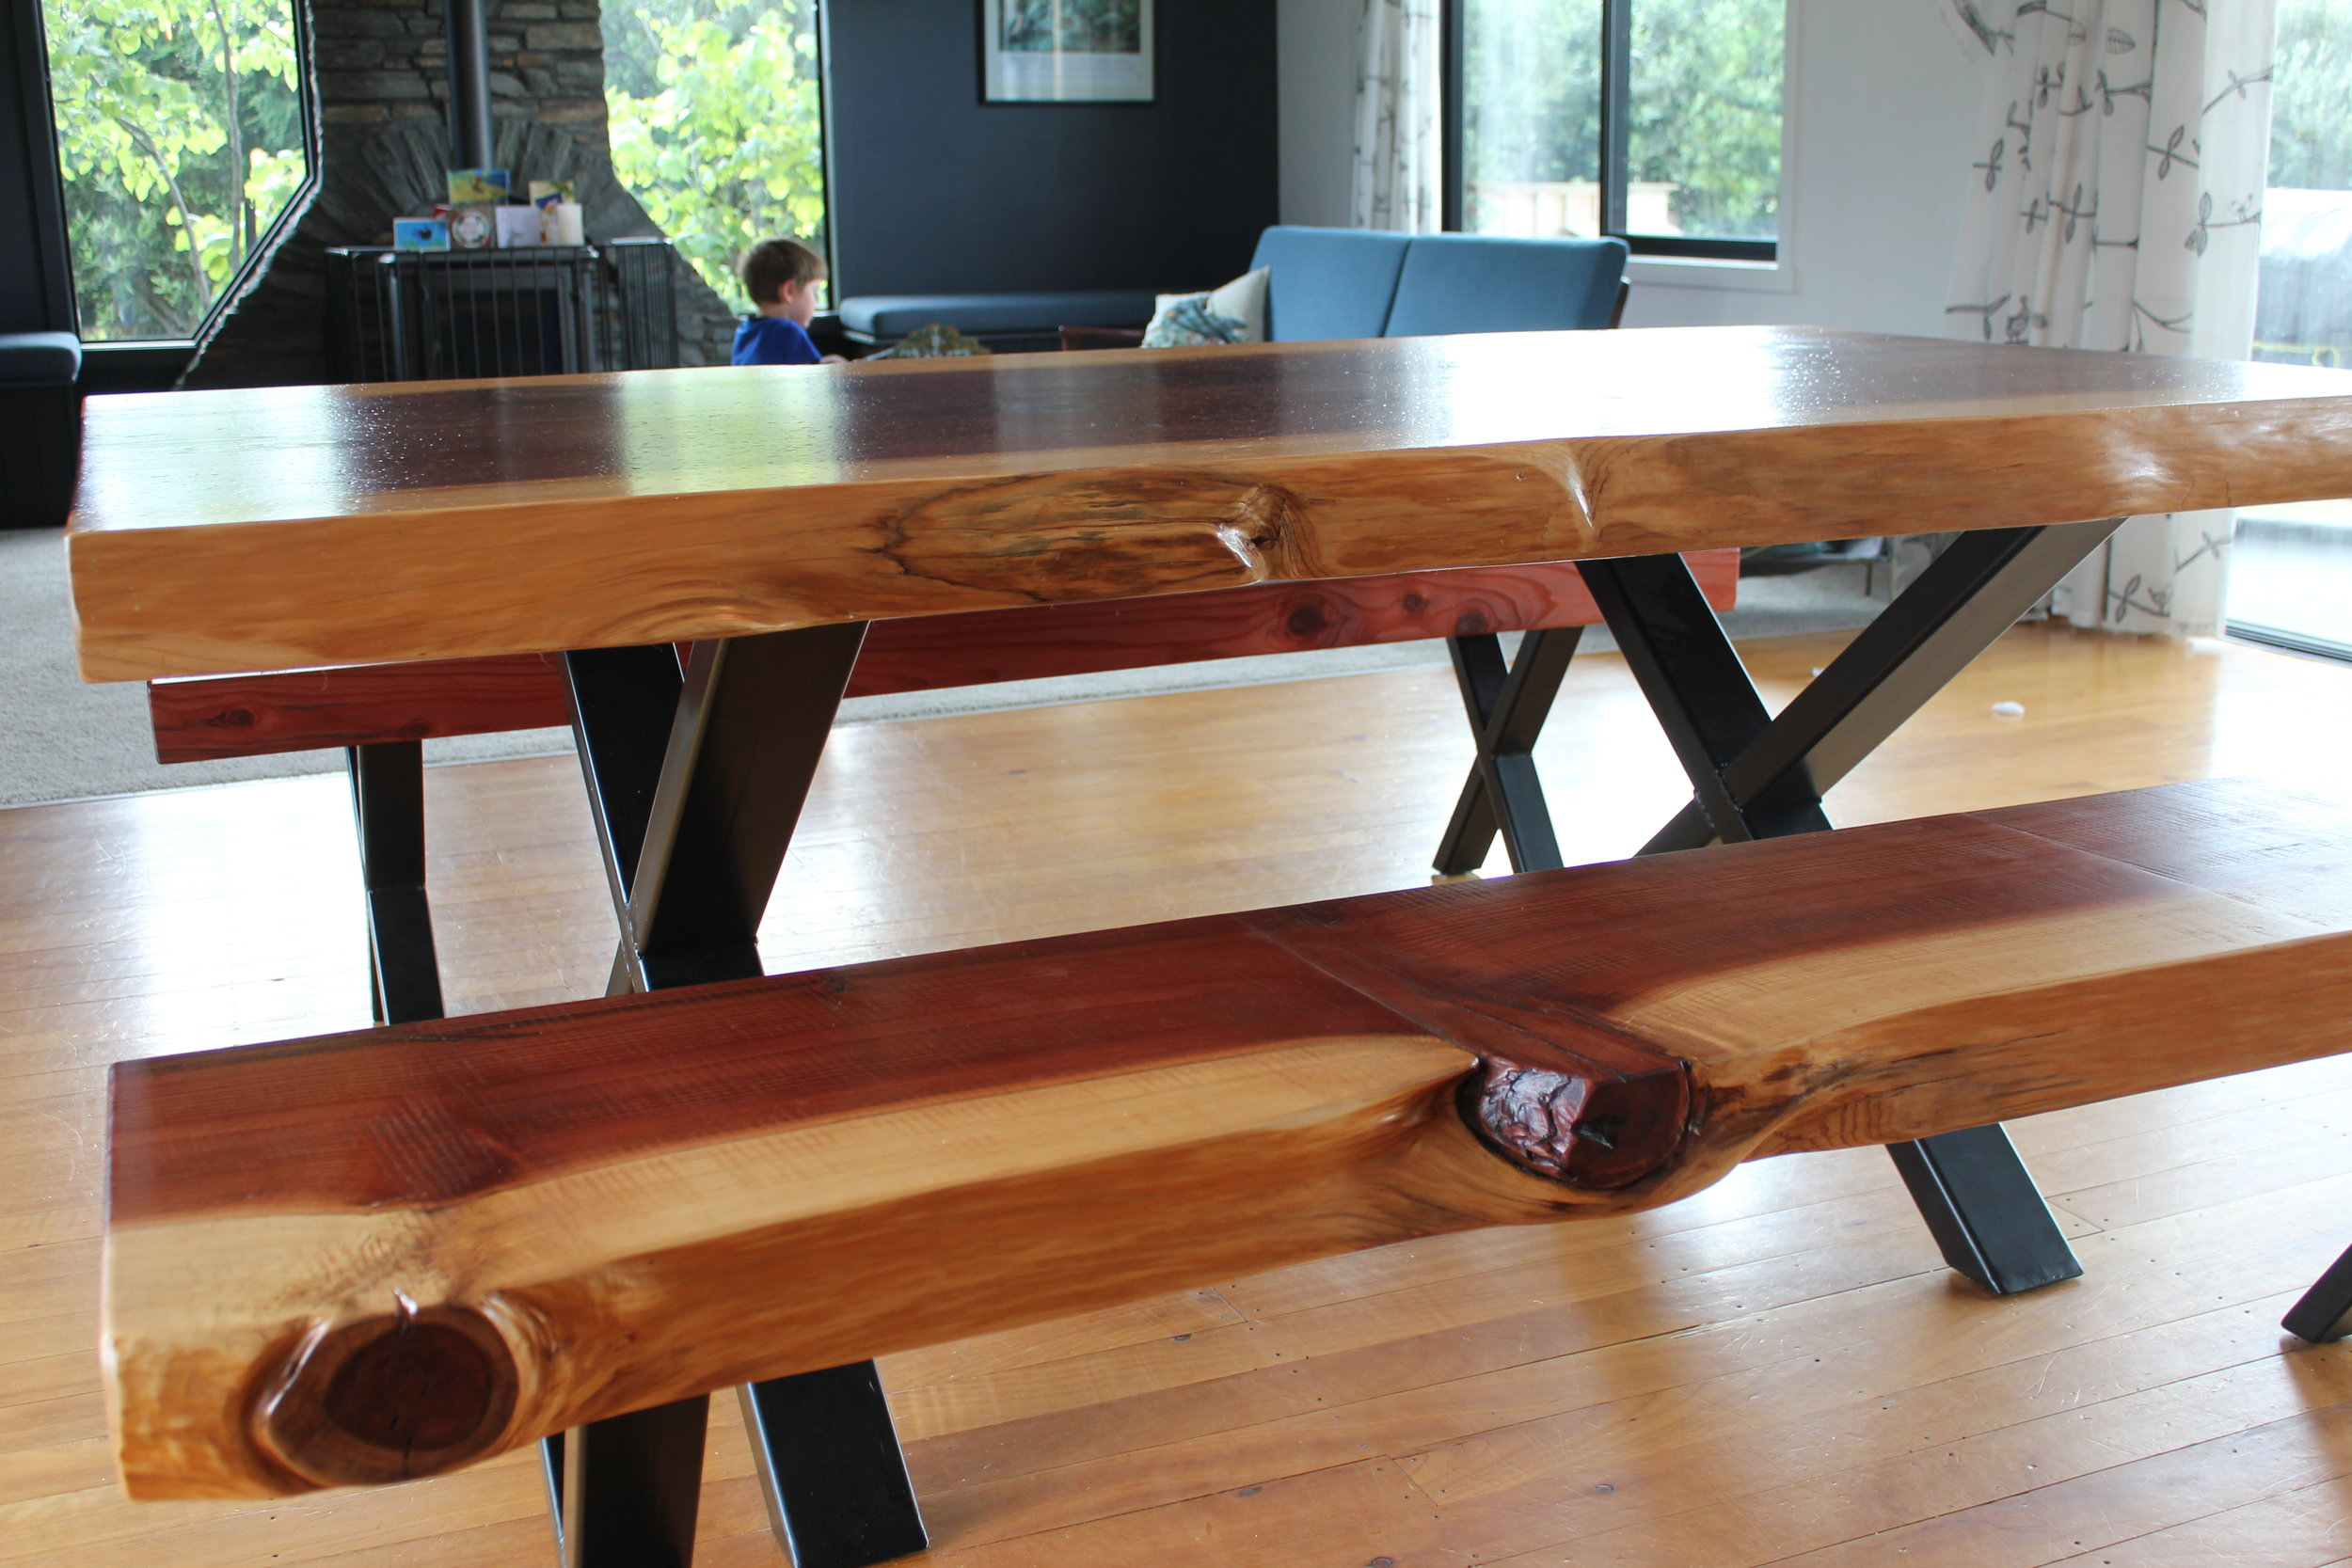 2m Redwood Dining Table and Bench Seats.   Dining table prices  .